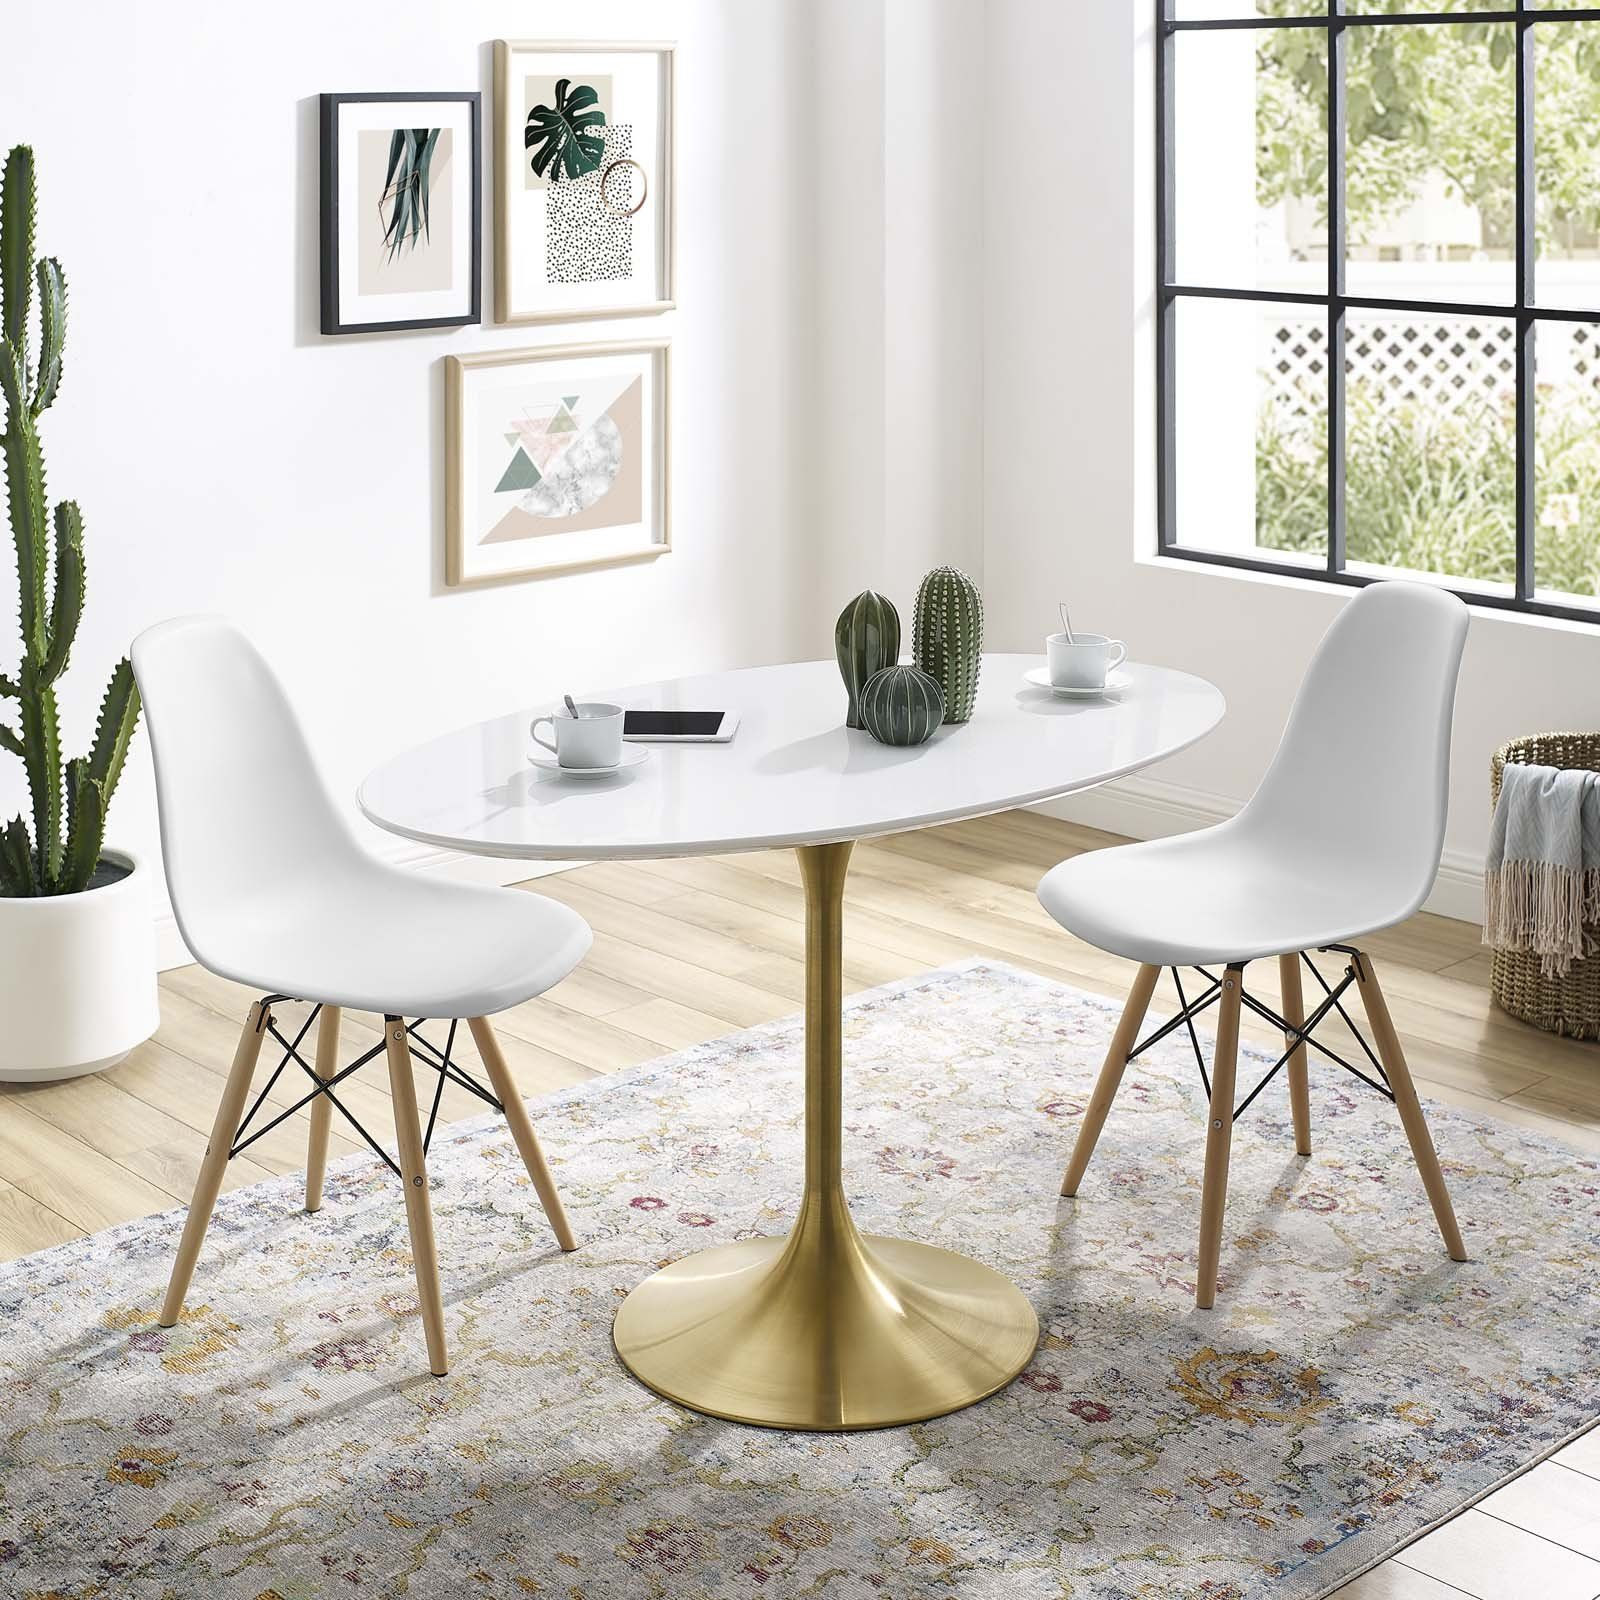 Modway Lippa 78 Oval Fiberglass Dining Table White Oval Table